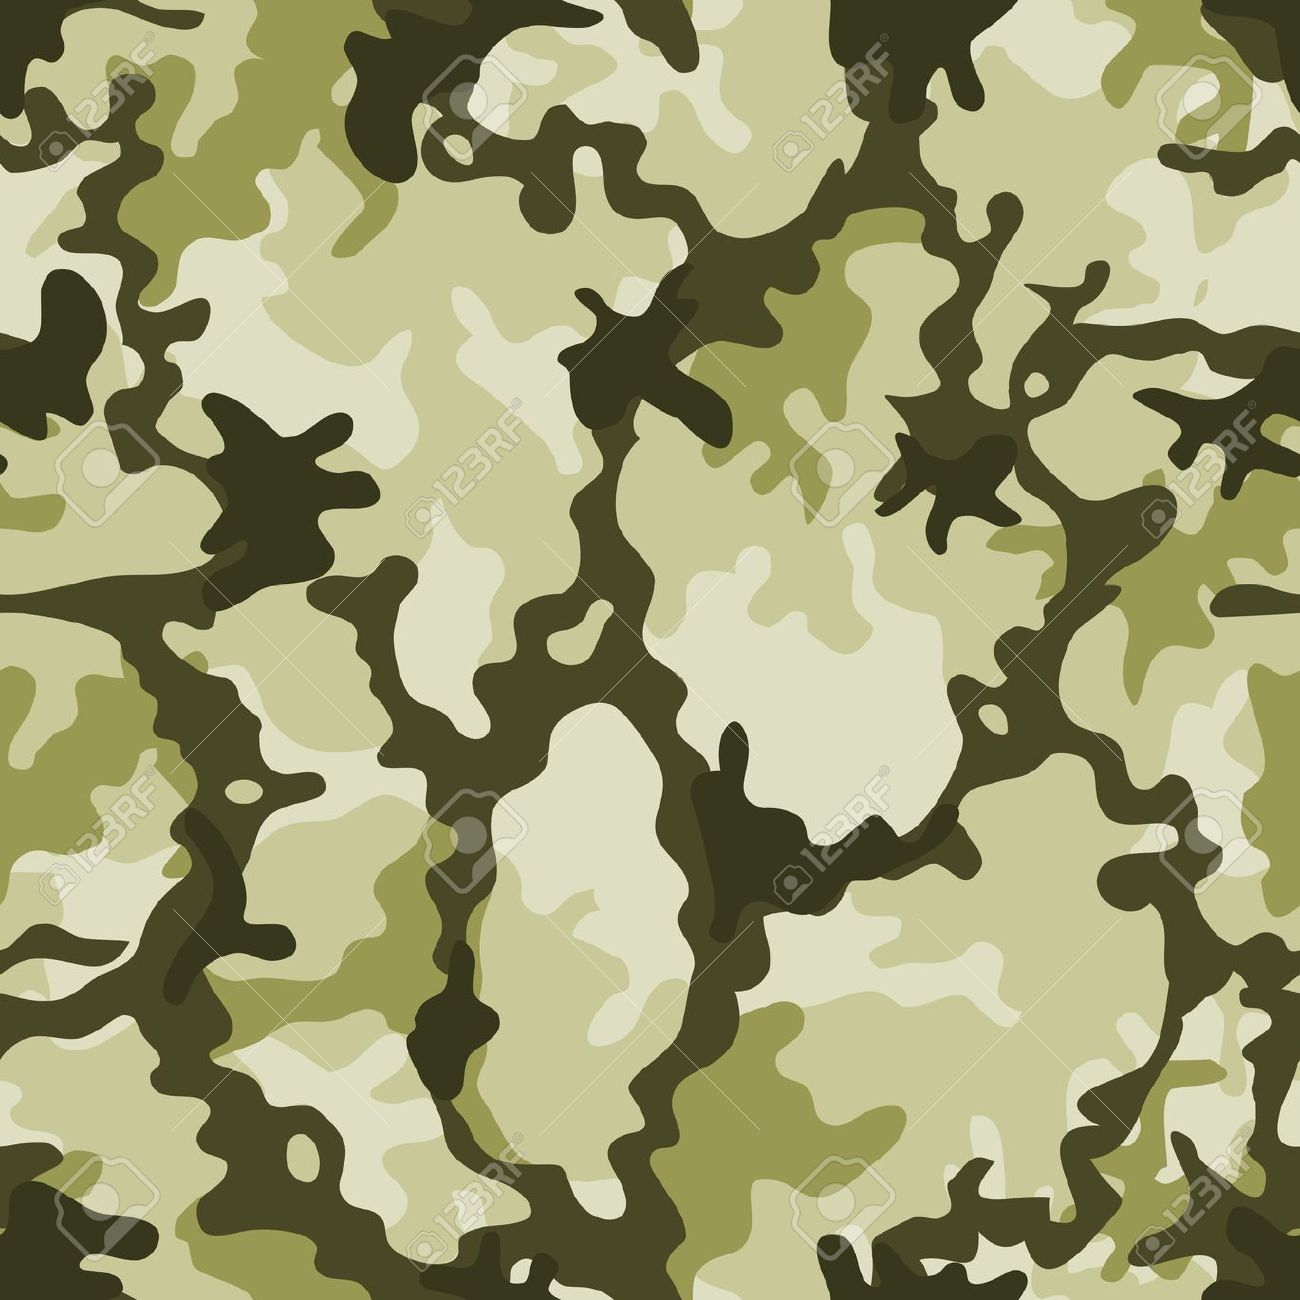 Free Army Background Cliparts, Download Free Clip Art, Free Clip Art.